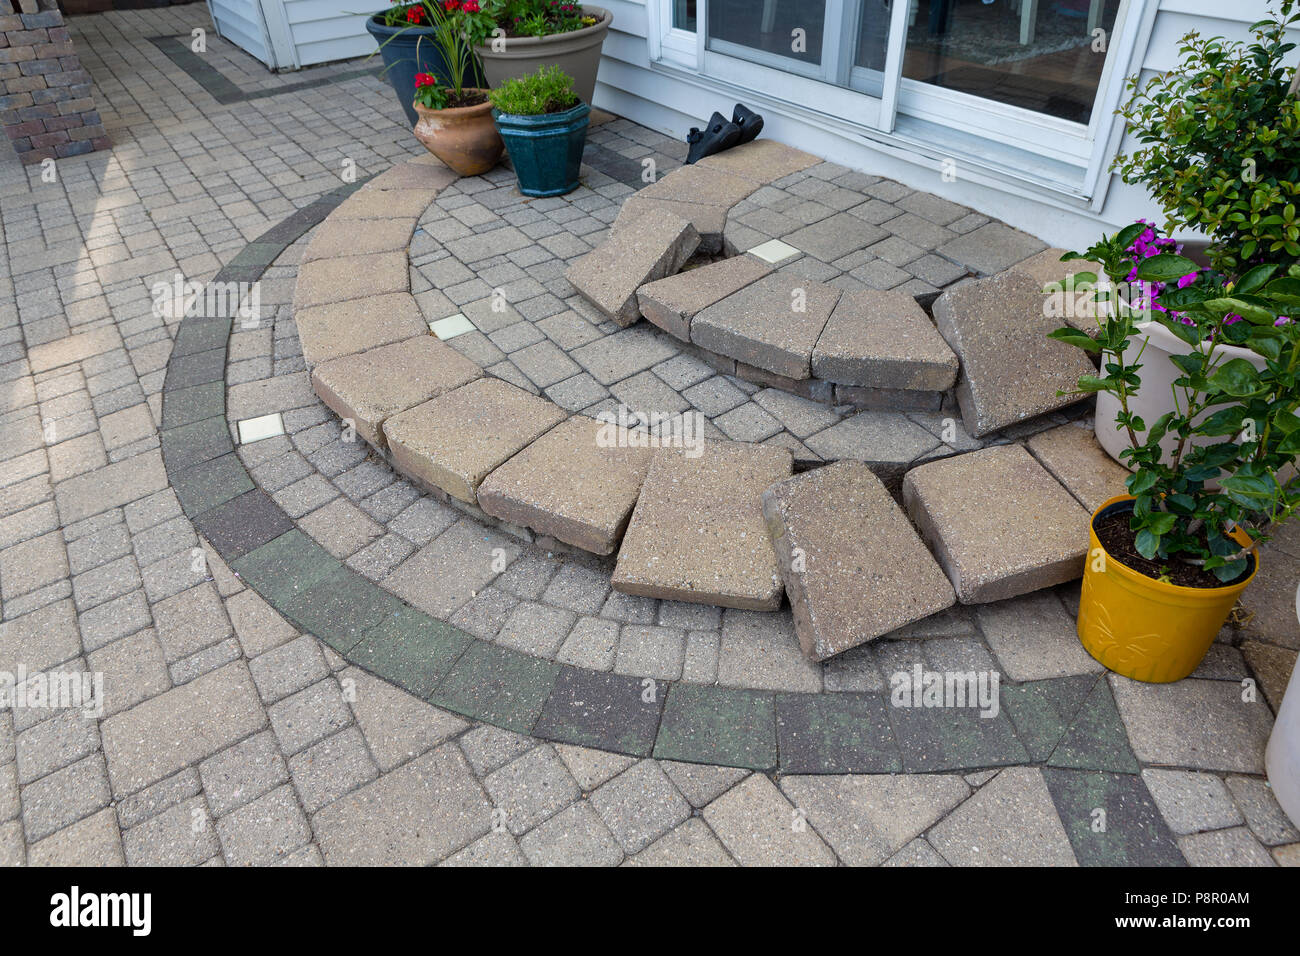 Replacing paving edging bricks on curved patio steps in front of the door to the house with them all laid neatly in position to commence work : curved patio - thejasonspencertrust.org